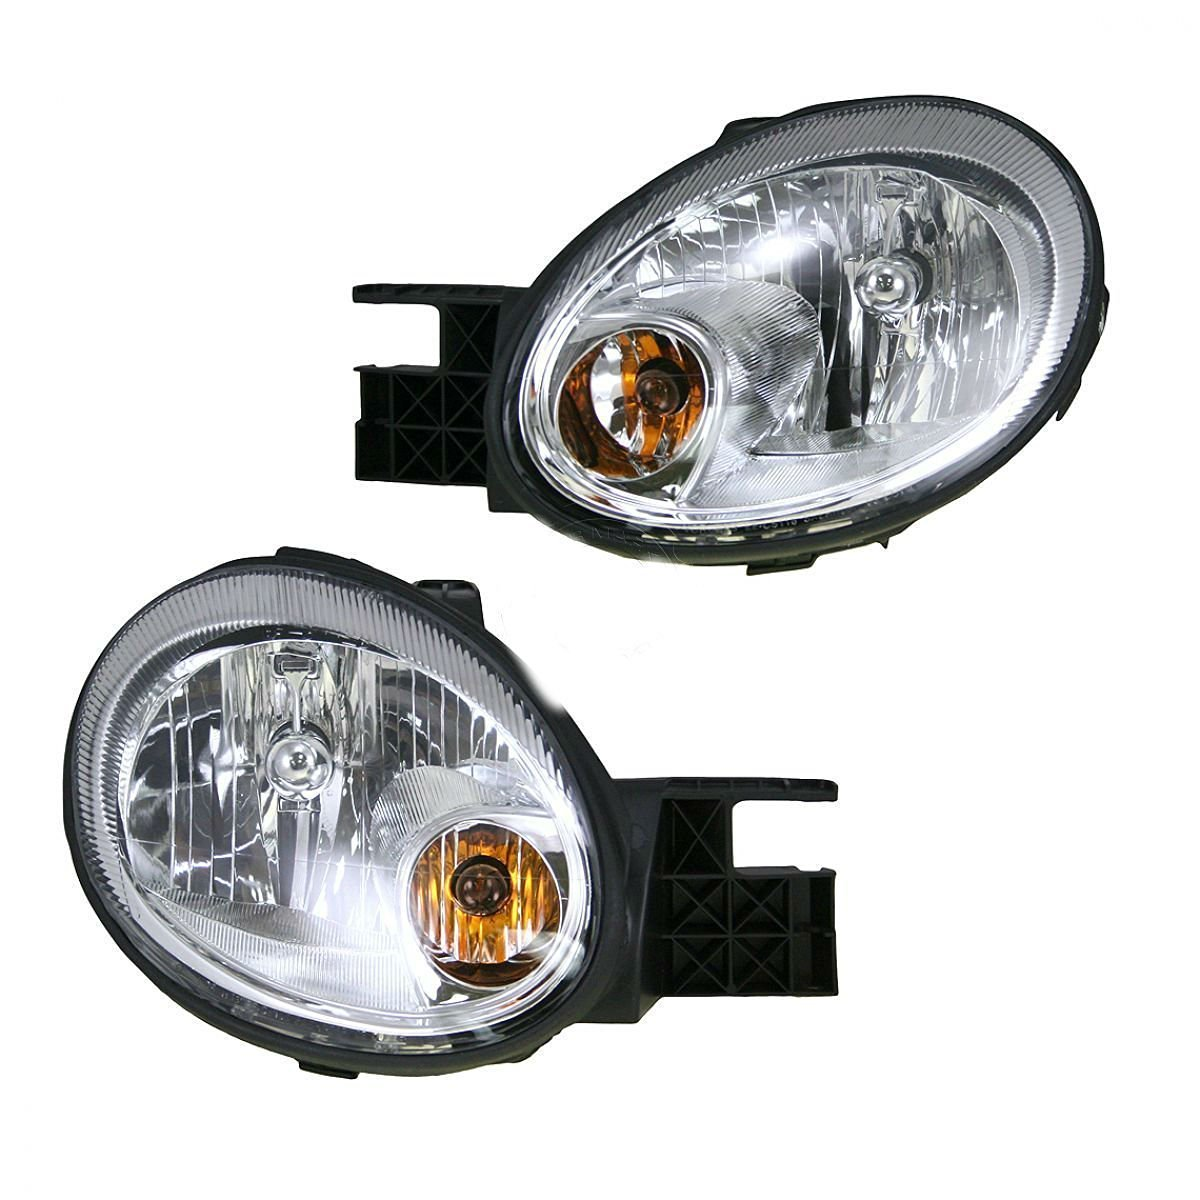 Headlights Headlamps w/ Chrome Bezel Left & Right Pair Set for 03-05 Dodge Neon